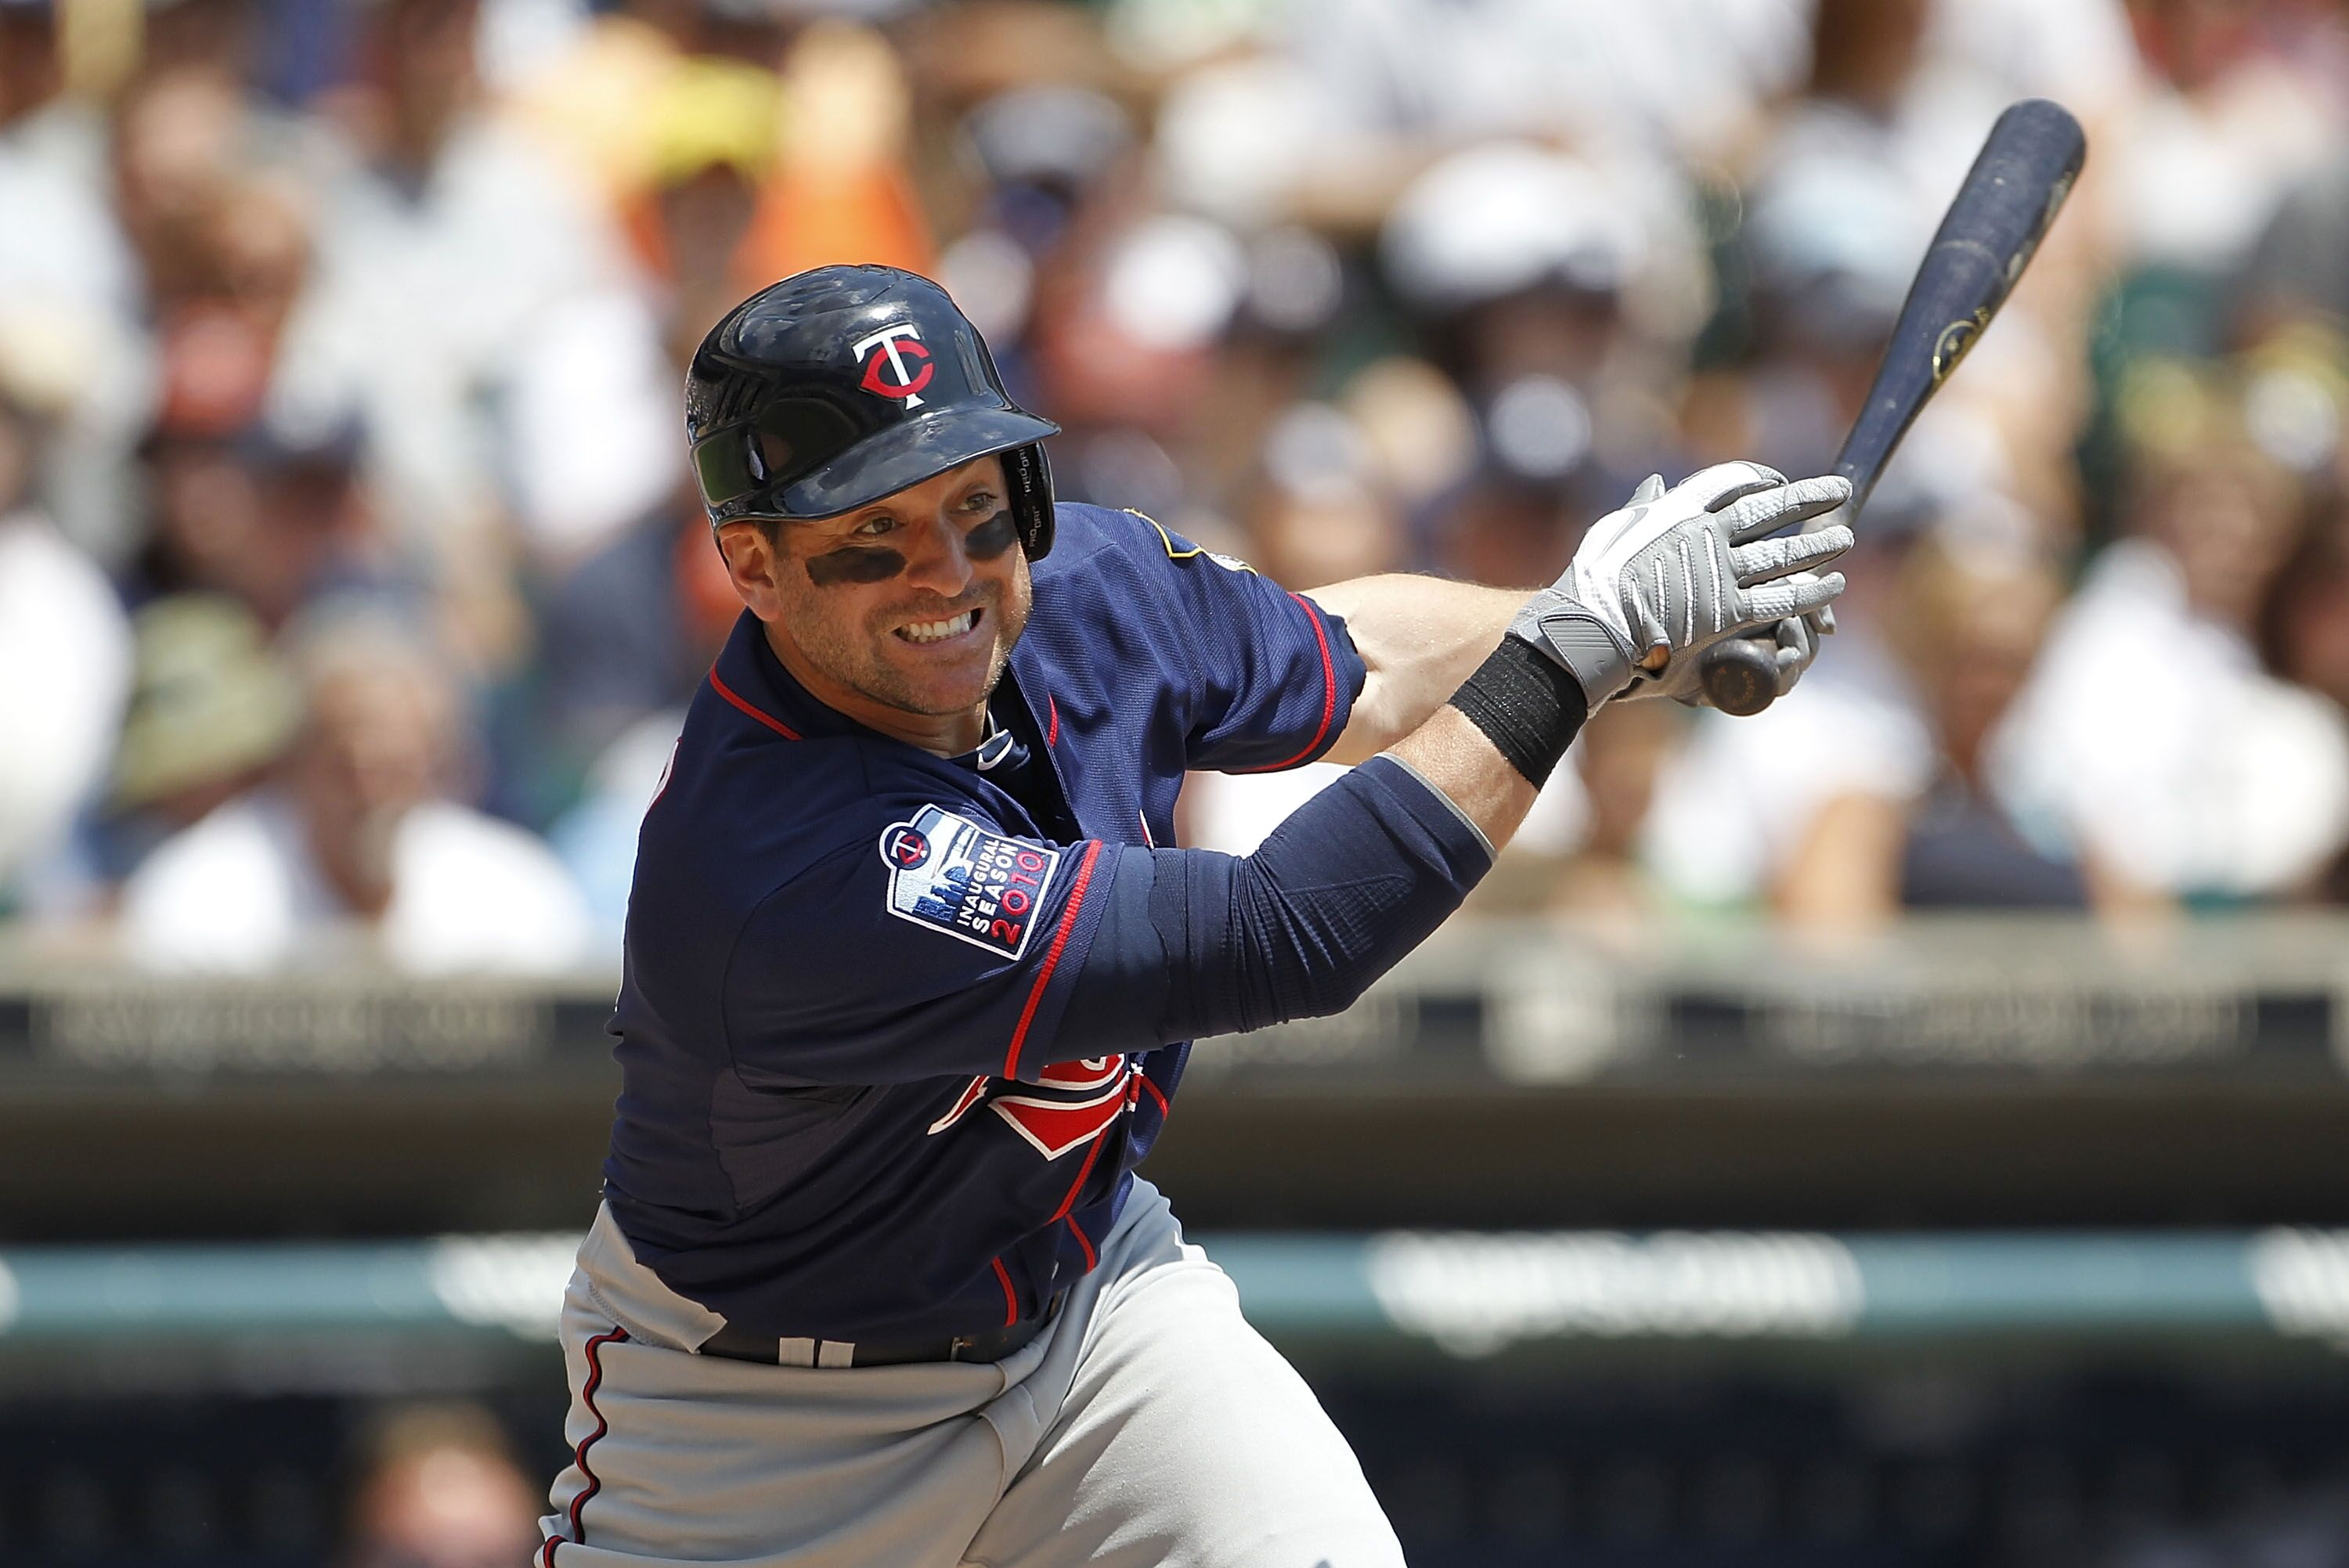 102811482-minnesota-twins-v-detroit-tigers.jpg